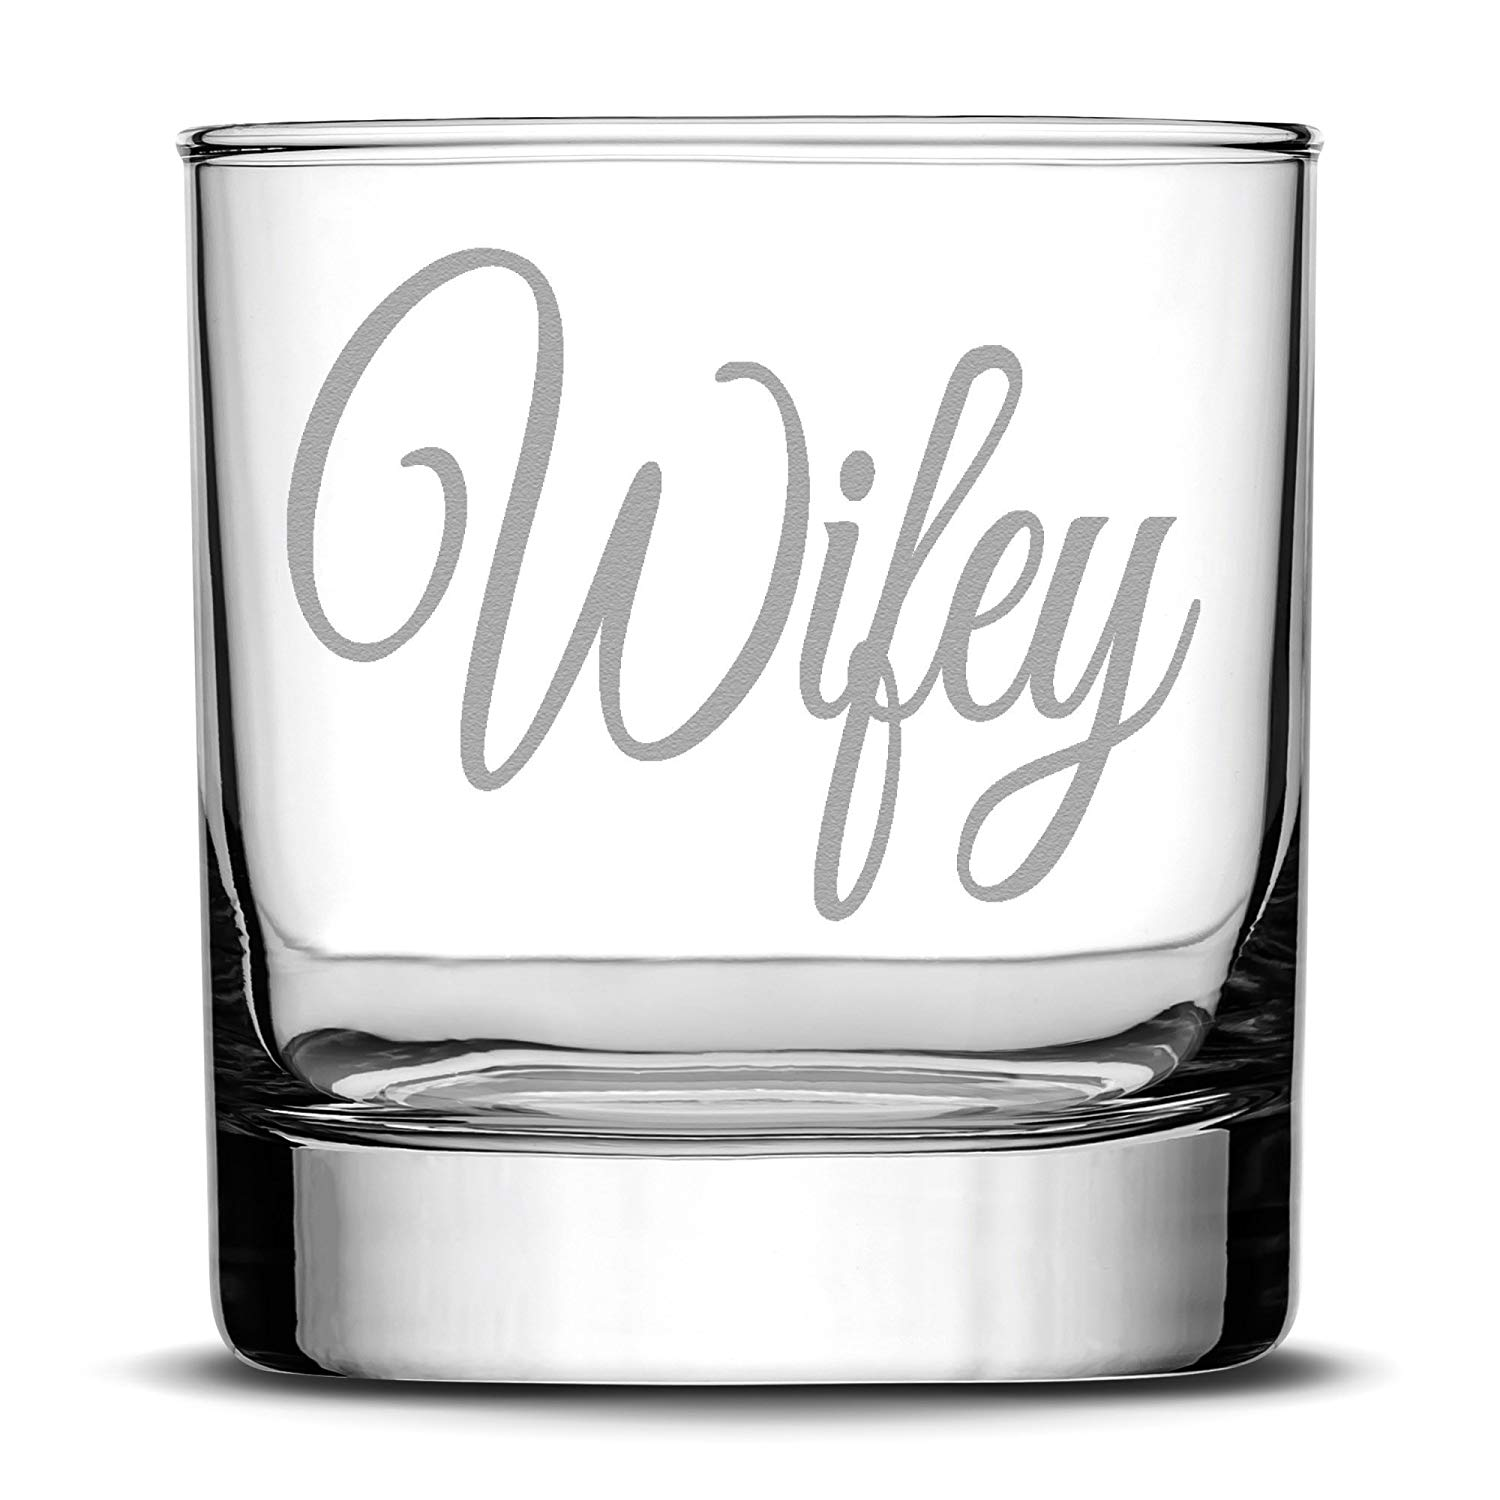 Premium Wifey Whiskey Glass, Hand Etched 10oz Rocks Glass, Made in USA, Highball Gifts, Single Glass, Sand Carved by Integrity Bottles